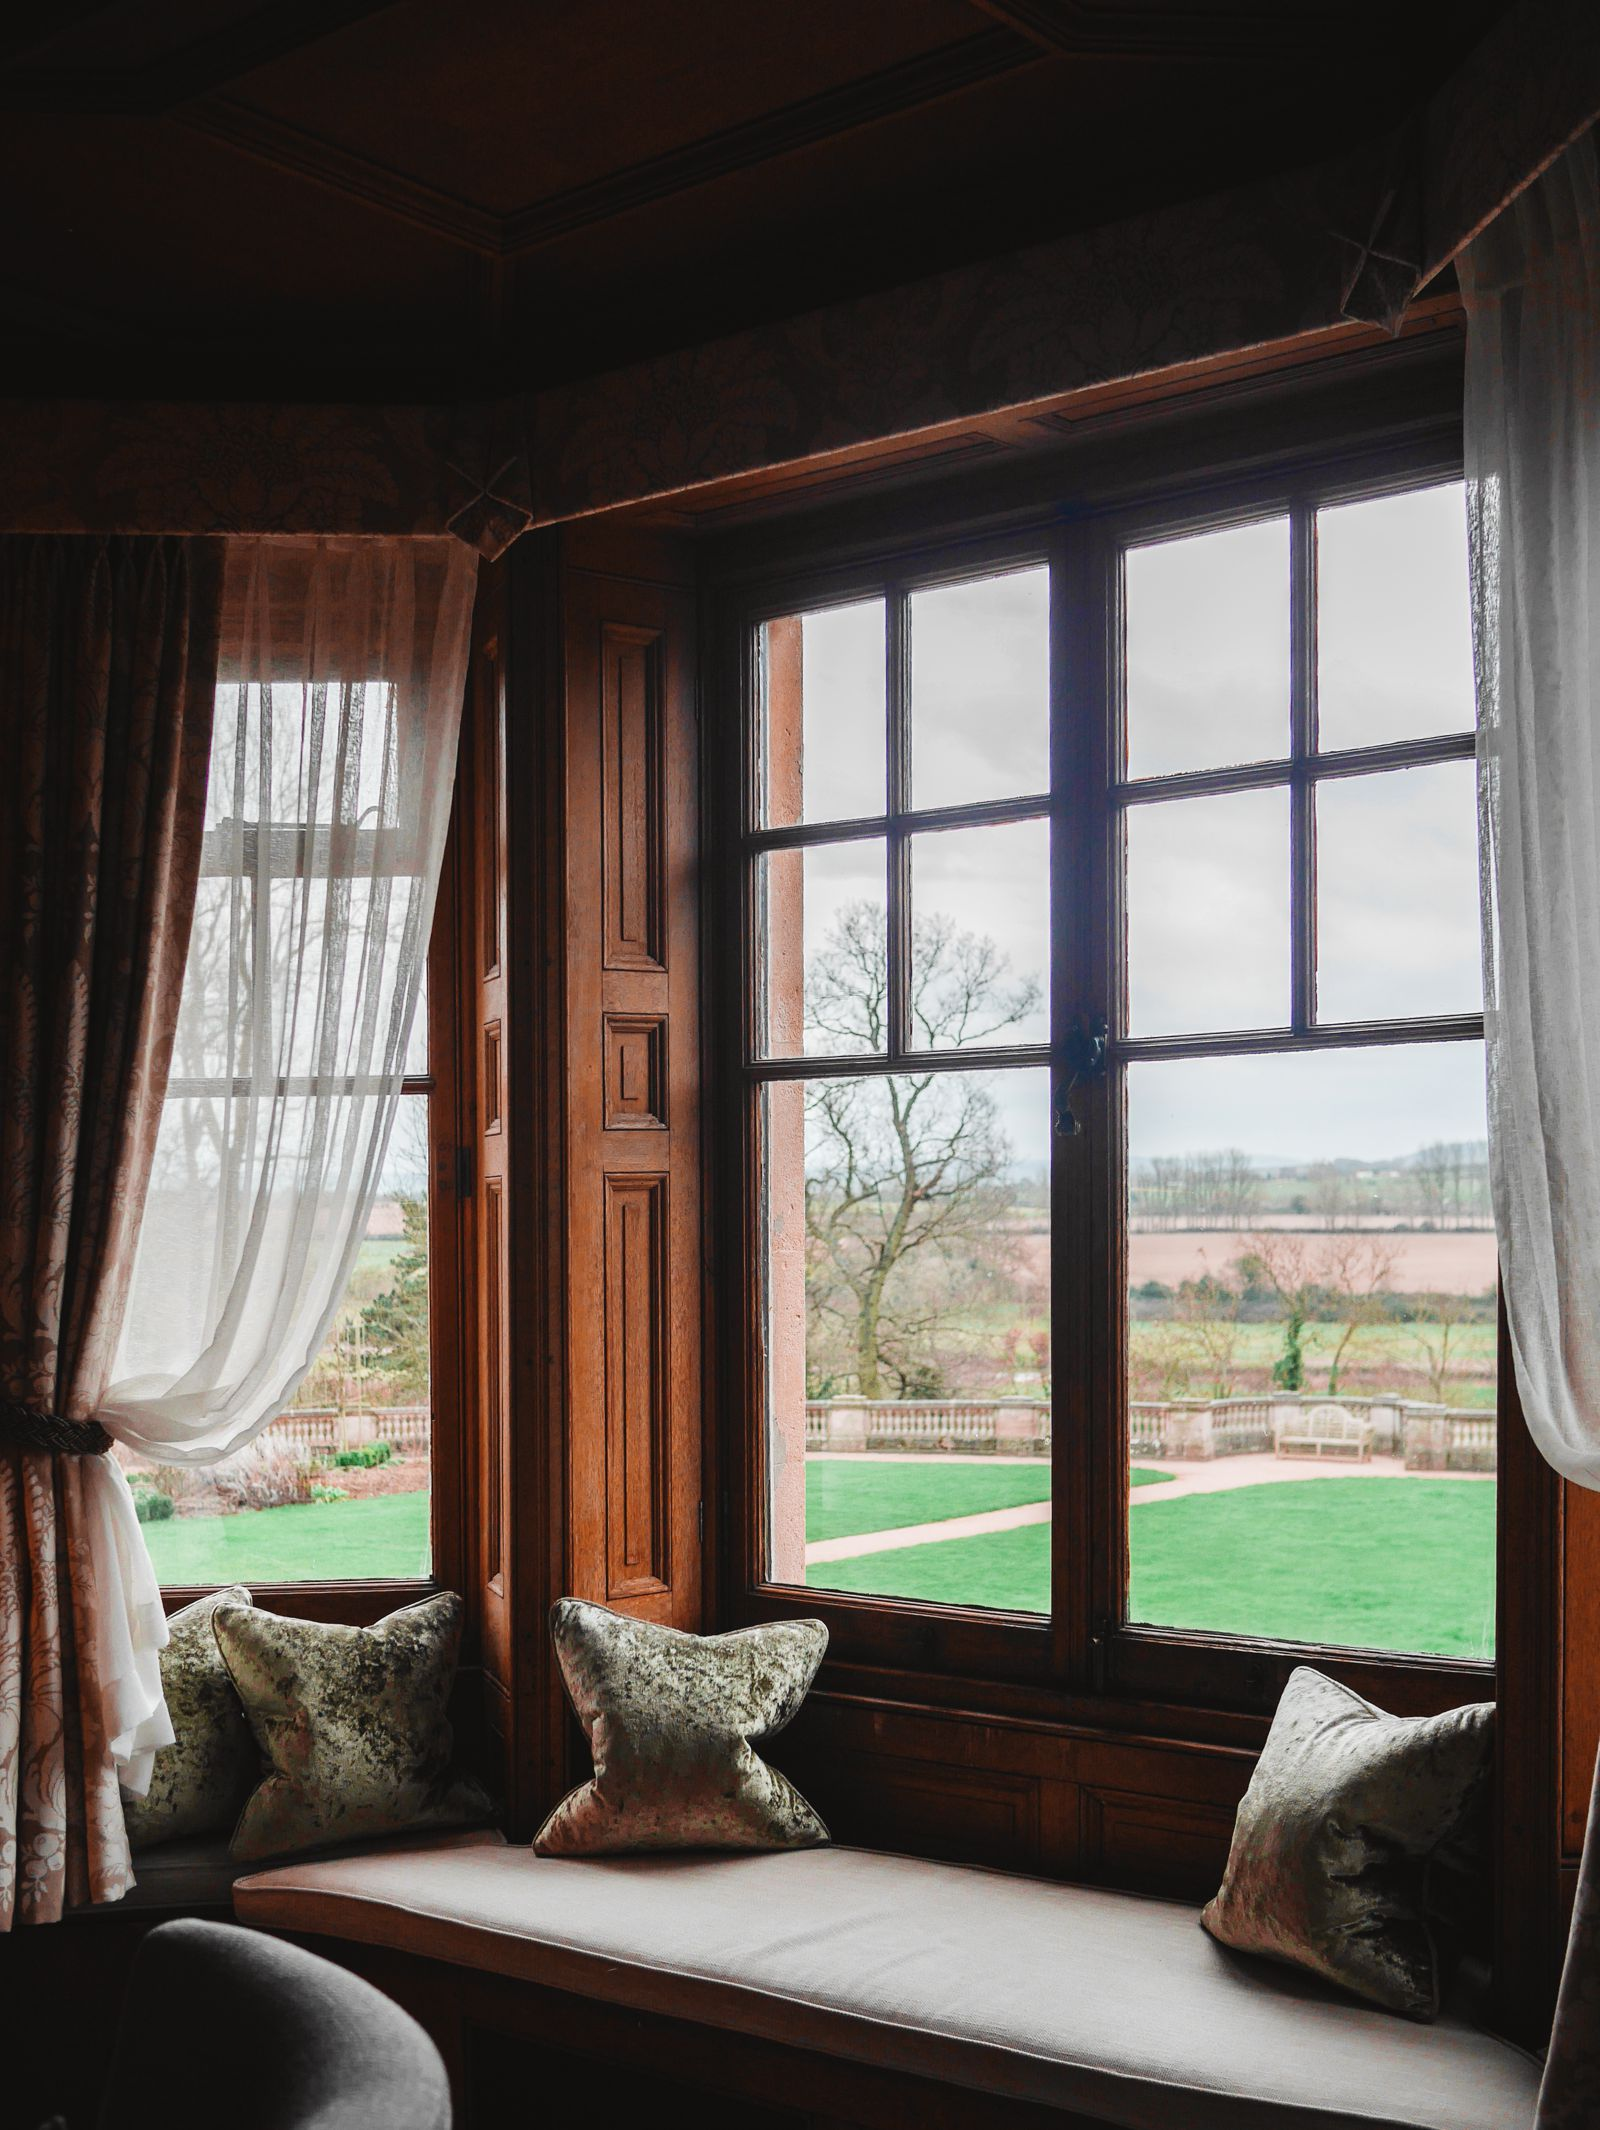 How To Plan The Perfect Weekend In The Picturesque Cotswolds, England (6)